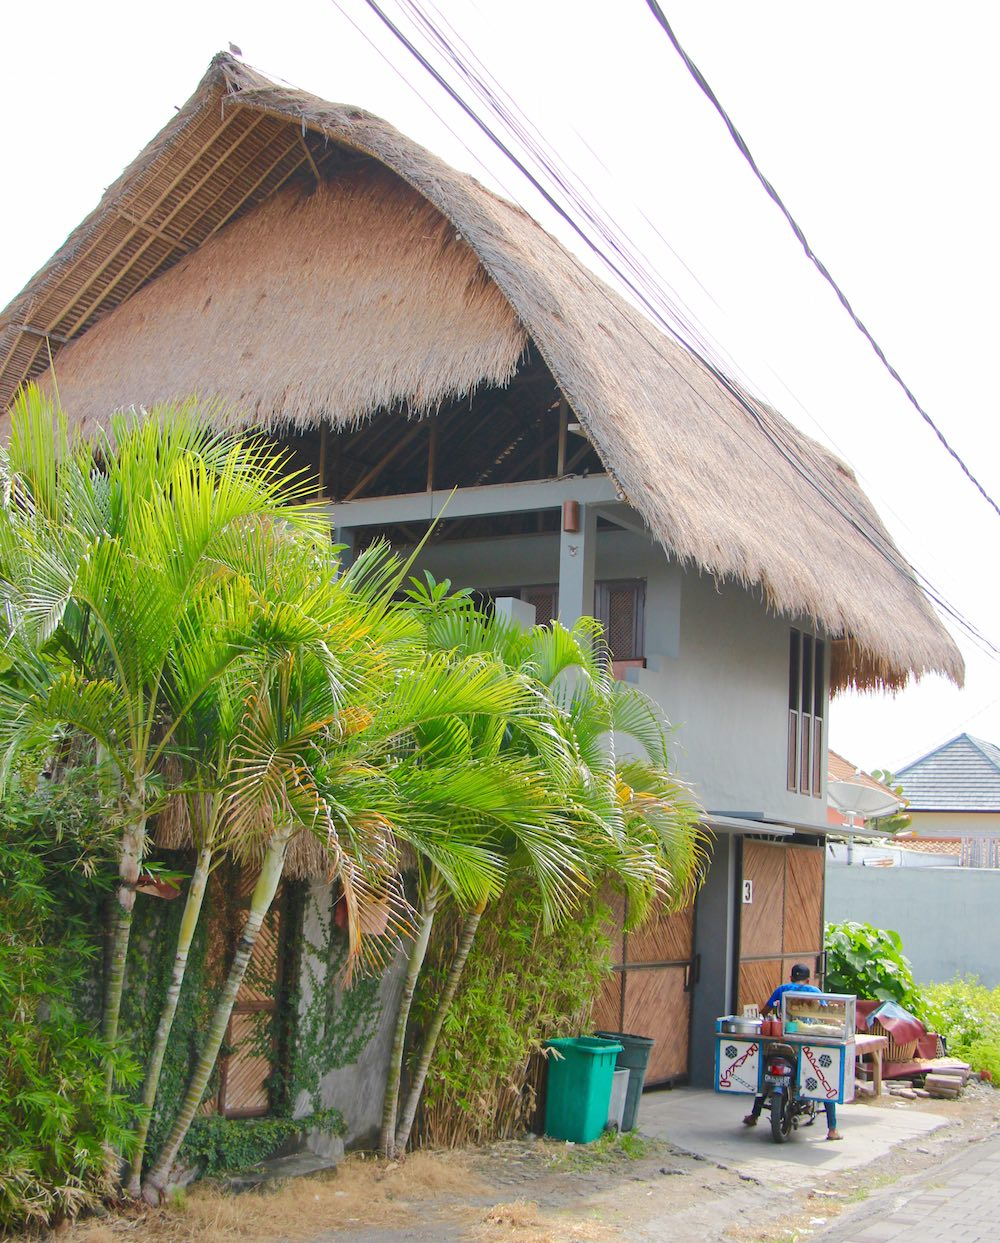 Balinese house and snack vendor on scooter in Canggu |curlytraveller.com